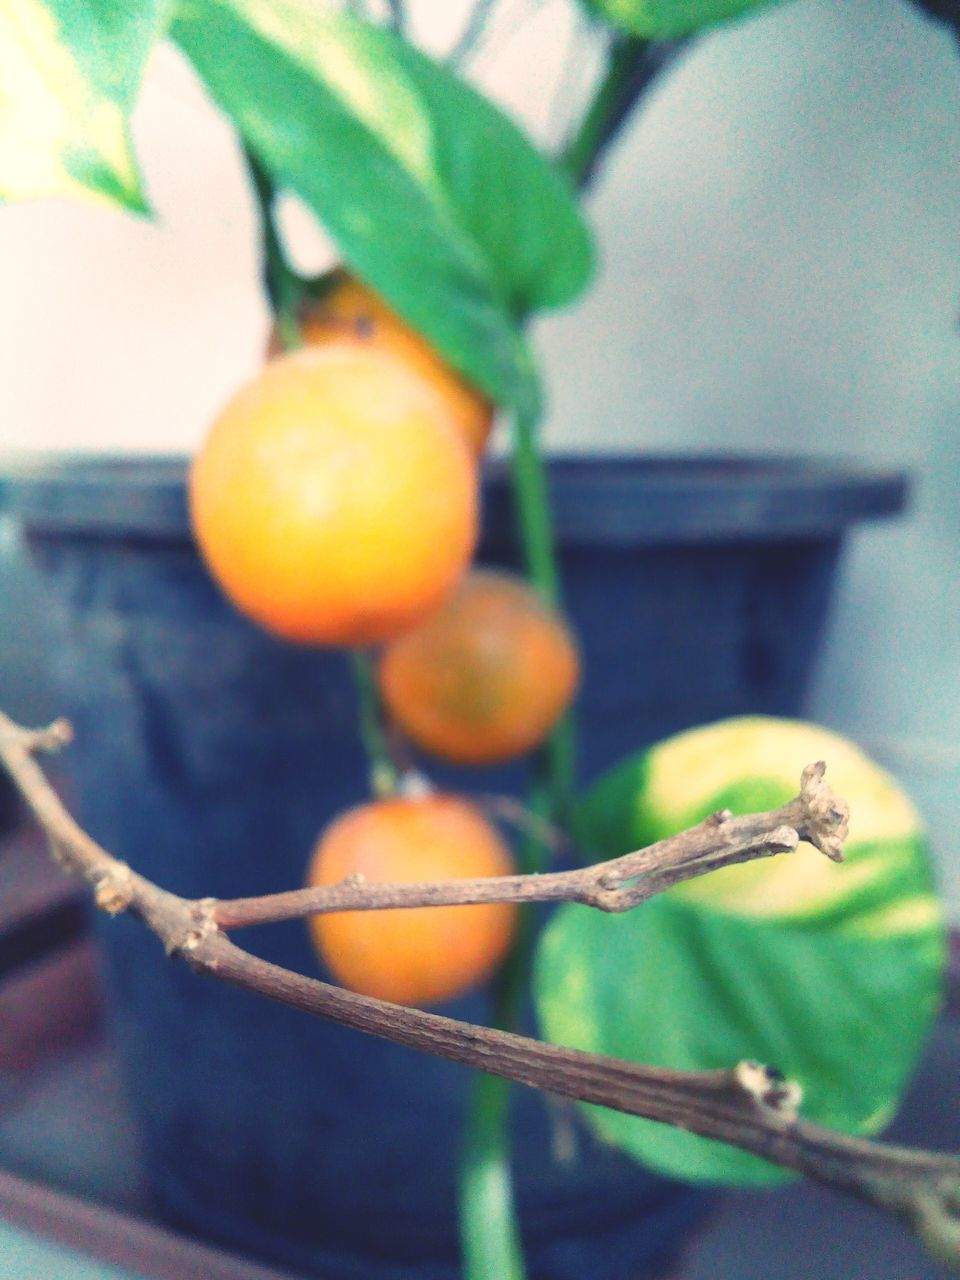 fruit, food and drink, no people, focus on foreground, close-up, food, hanging, day, freshness, healthy eating, leaf, growth, outdoors, nature